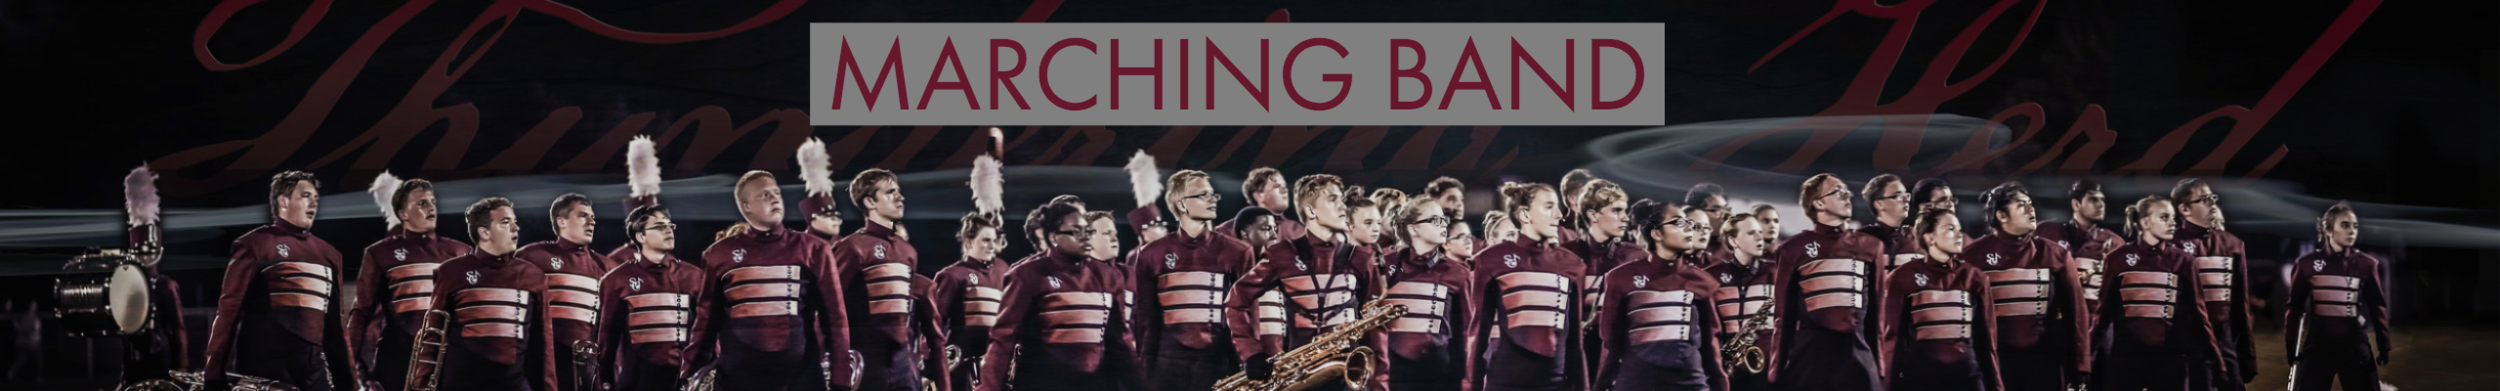 scroll down    for examples of Peoria & Phoenix Az area marching & concert band portraits and action photos by Anjeanette Photography!